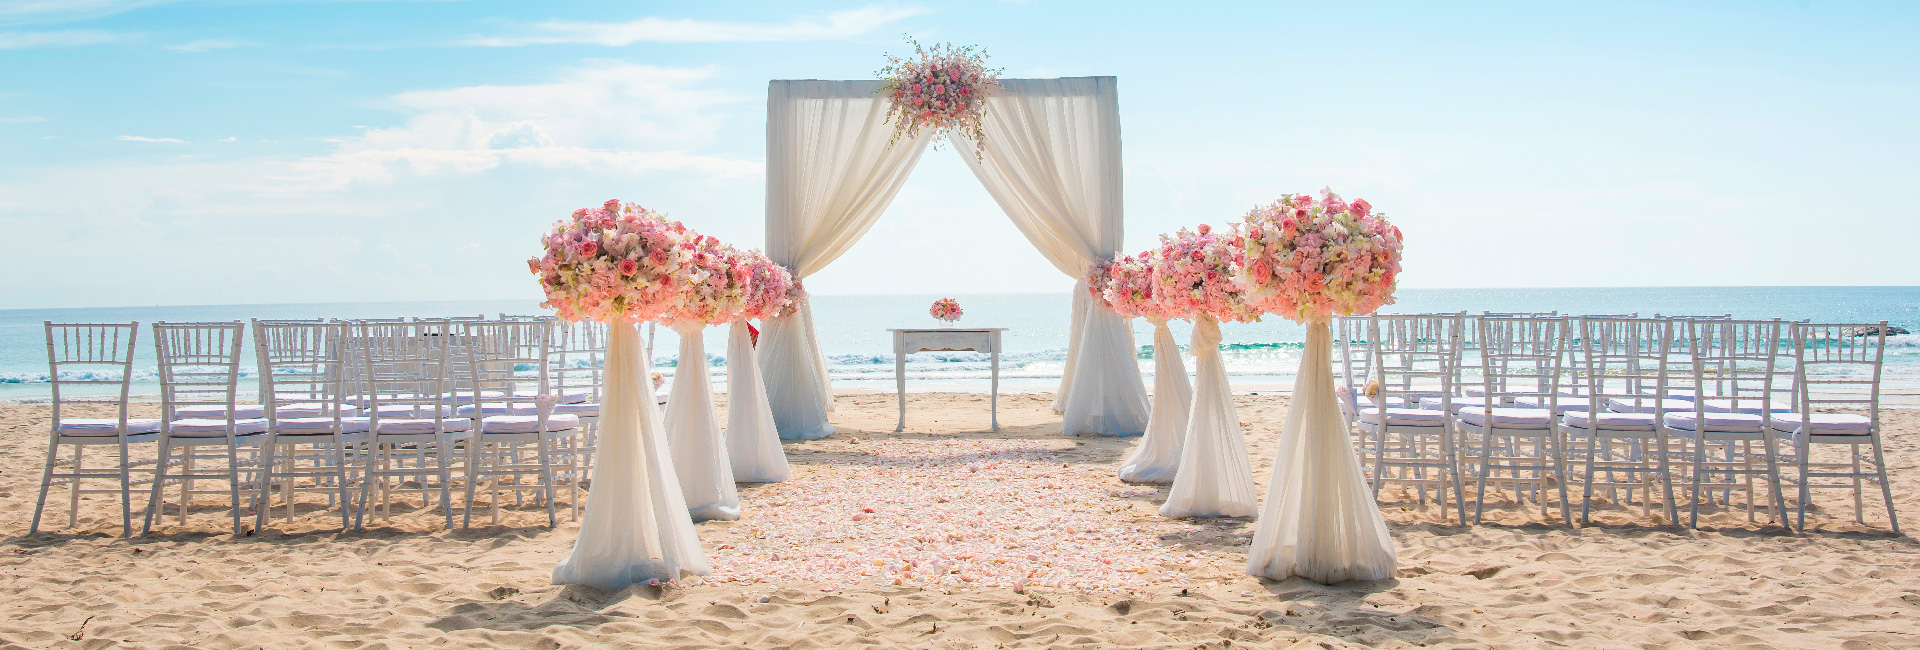 Optimizada weddings 1920x650